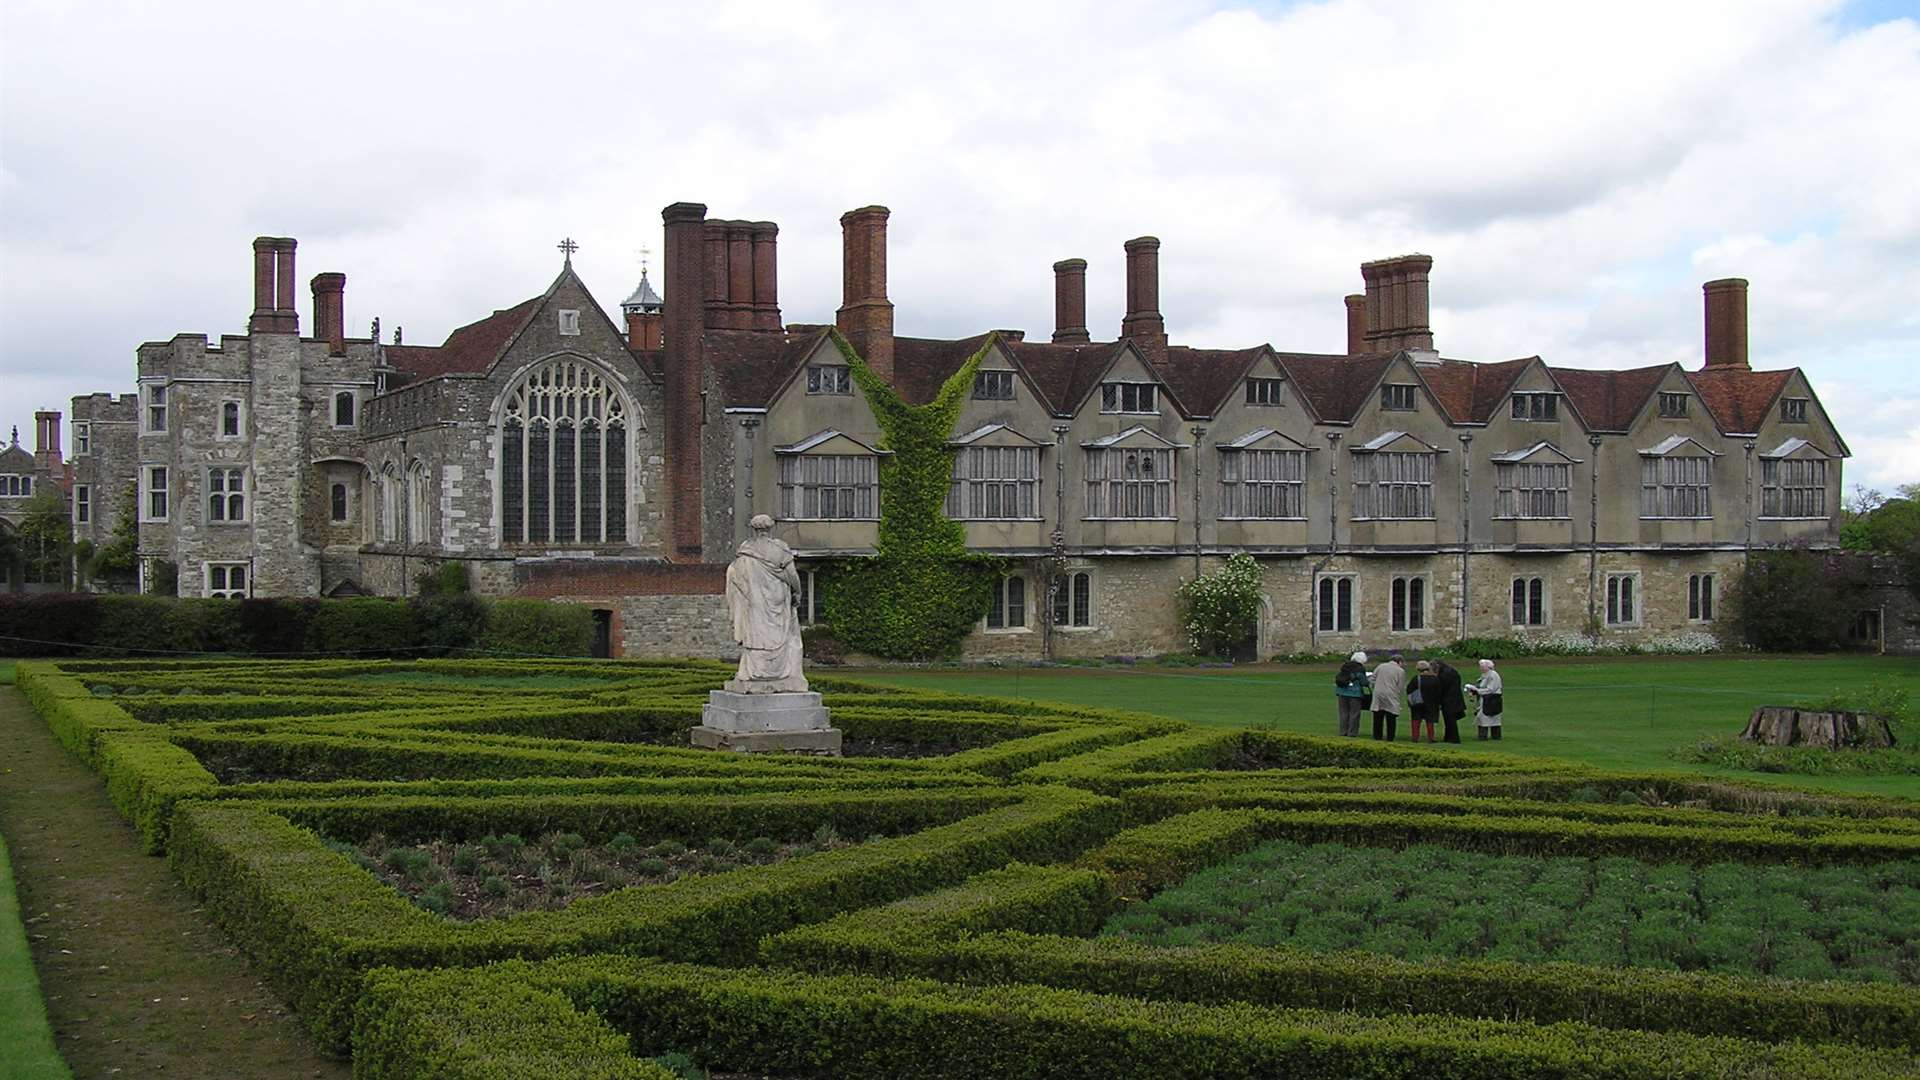 Lord Sackville's garden is a key attraction at Knole